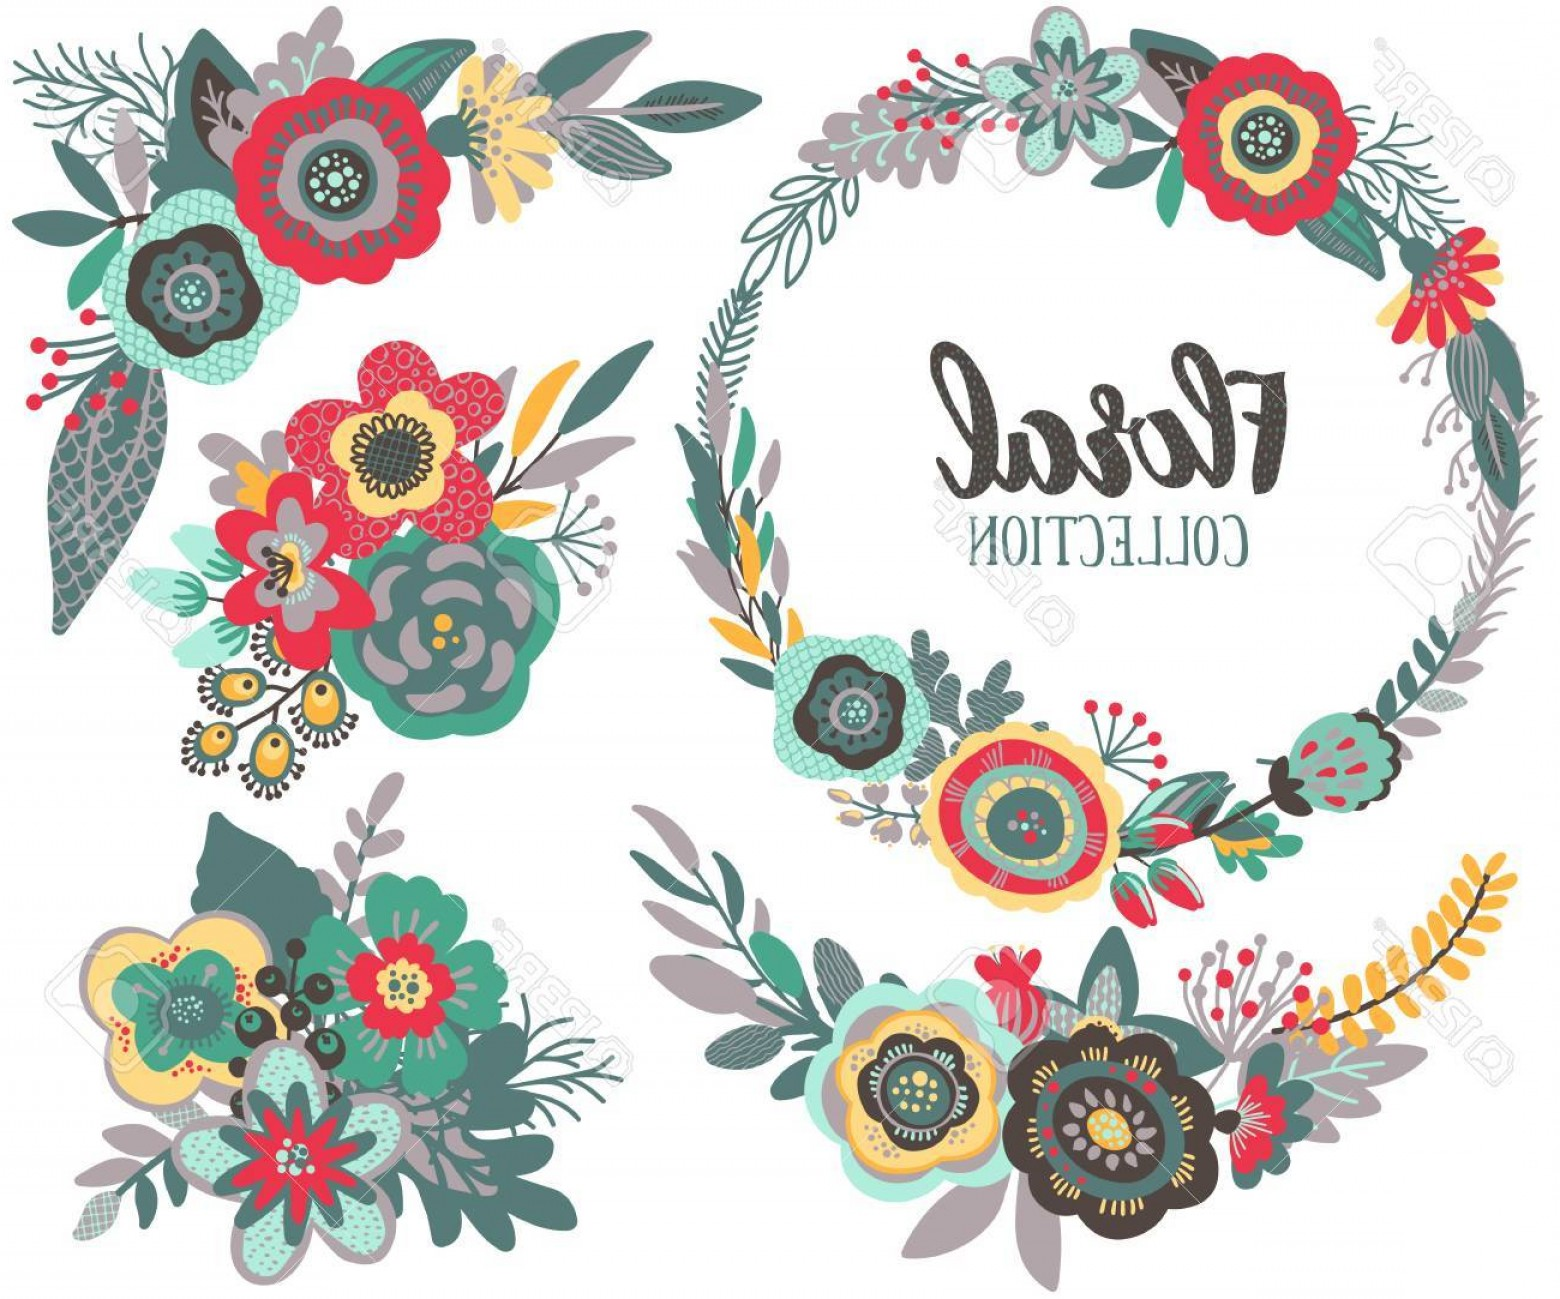 Beautiful Flowers Vector Graphic: Photostock Vector Vector Graphic Set With Beautiful Flowers Floral Wreath Bouquets Colorful Collection For Greeting Sa